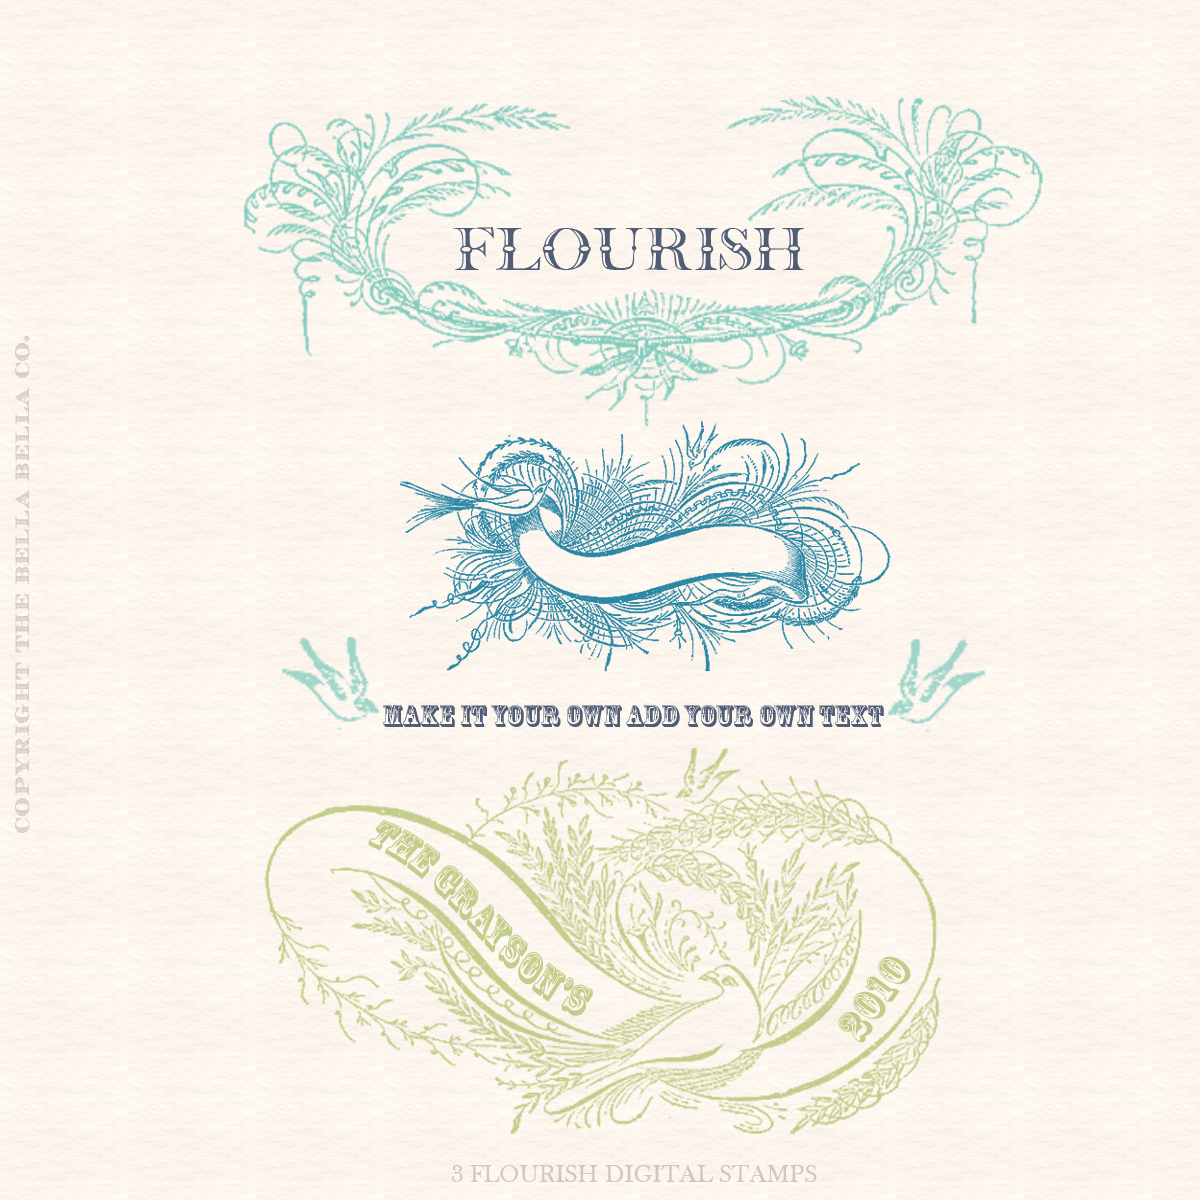 MISC. FLOURISH DIGITAL STAMPS